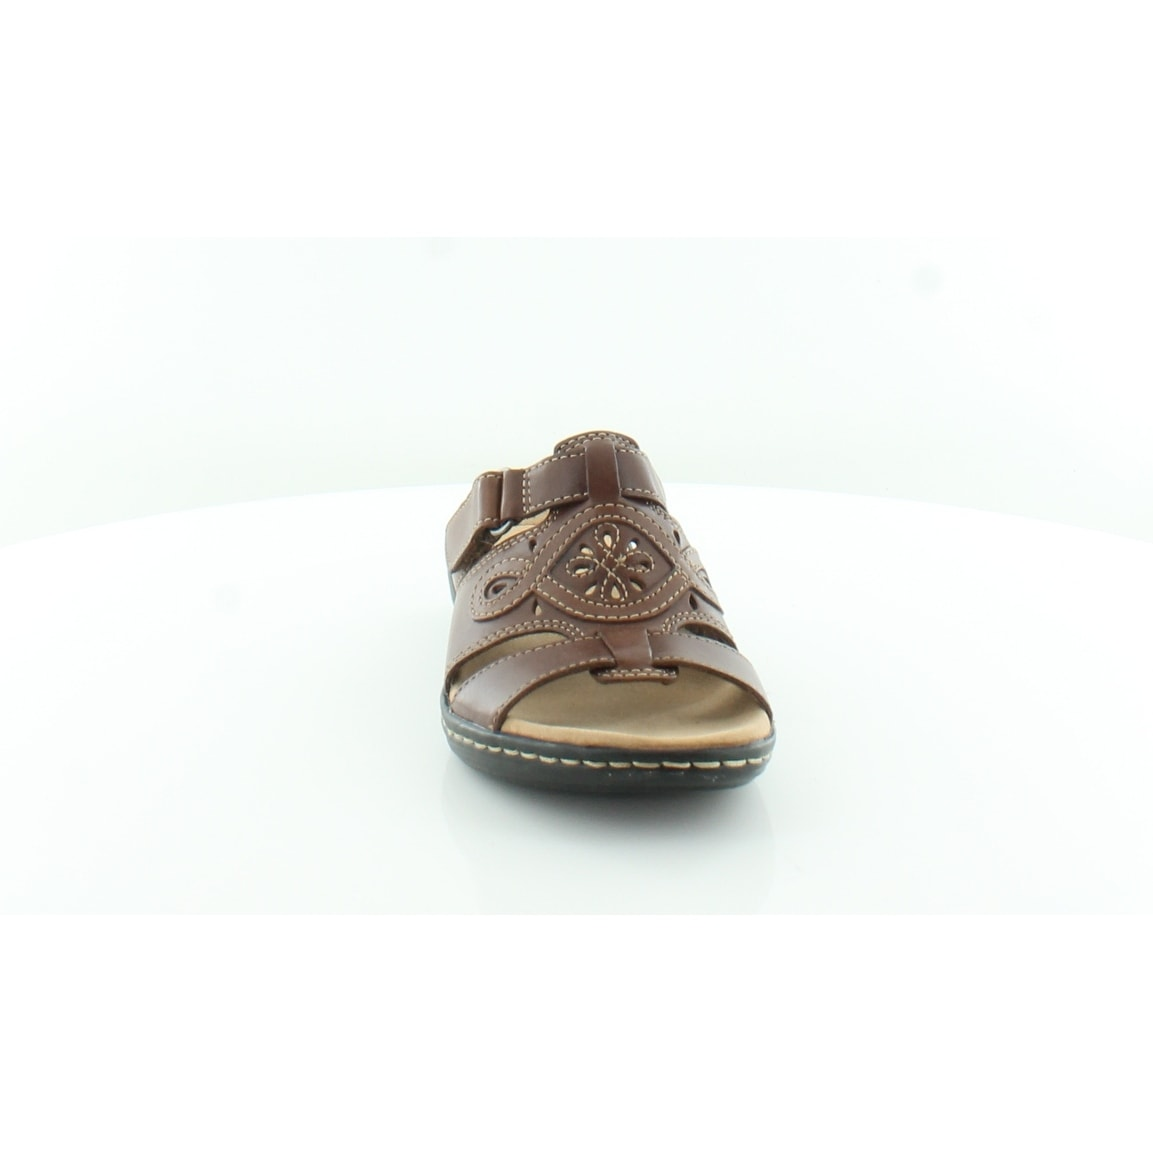 0b5a4155796f Shop Clarks Leisa Higley Women s Sandals Tan - 5.5 - Free Shipping Today -  Overstock.com - 27036245